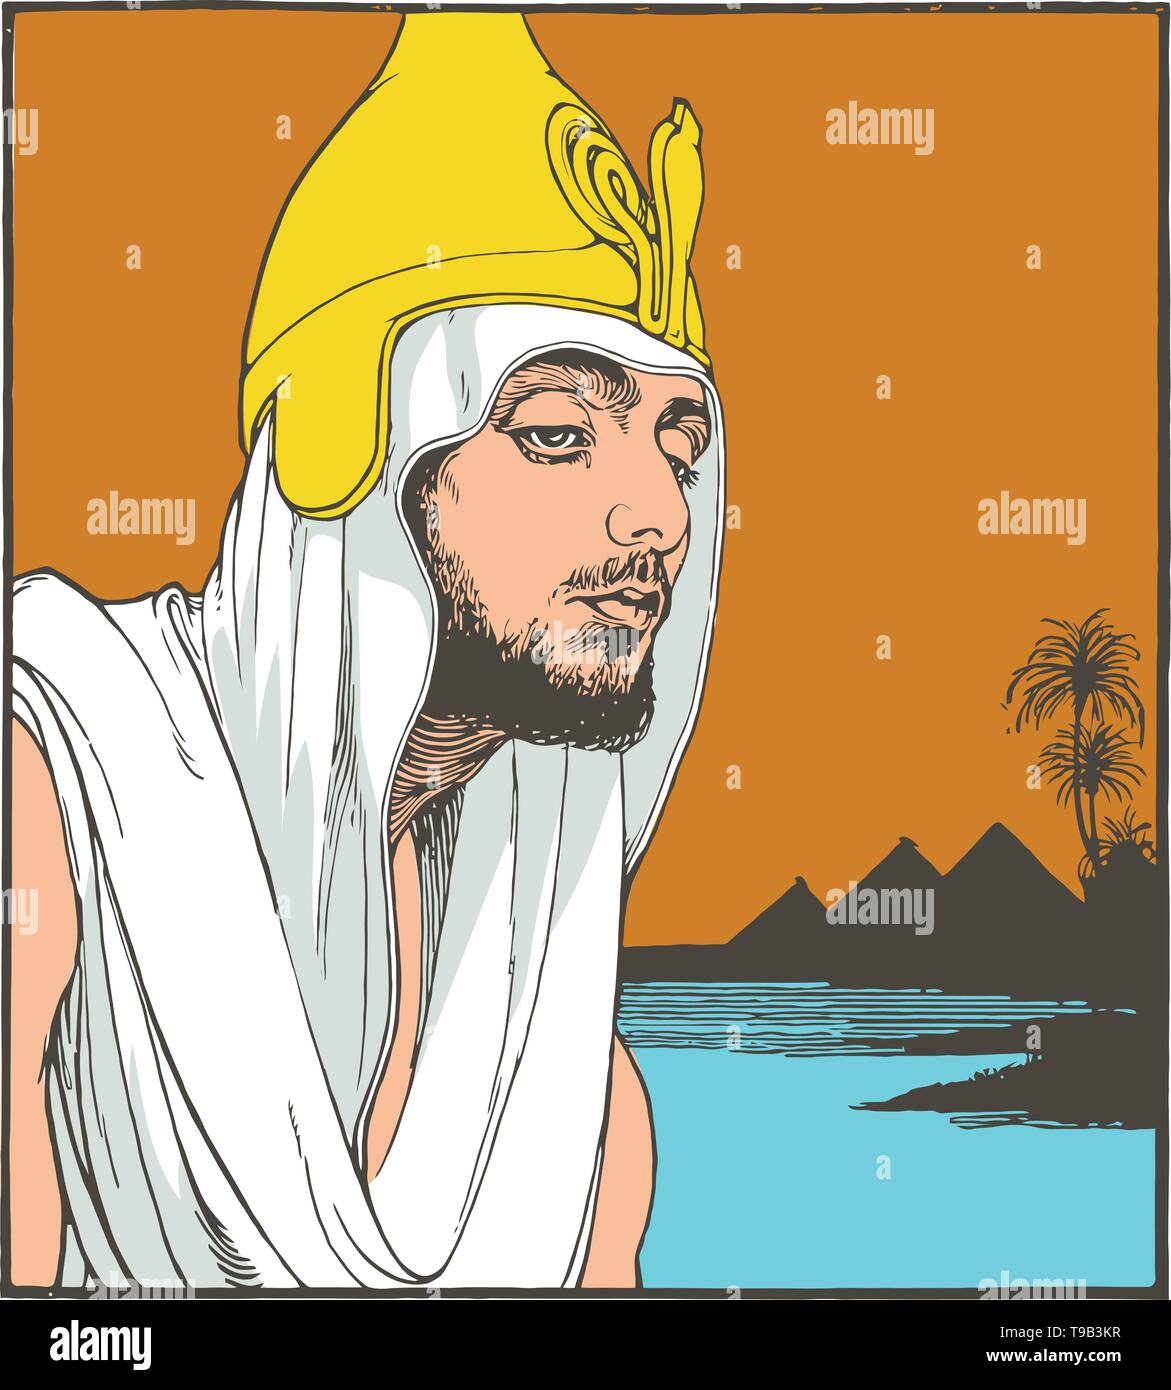 Young Moses near nile and pyramids. Line art illustration, vector - Stock Vector